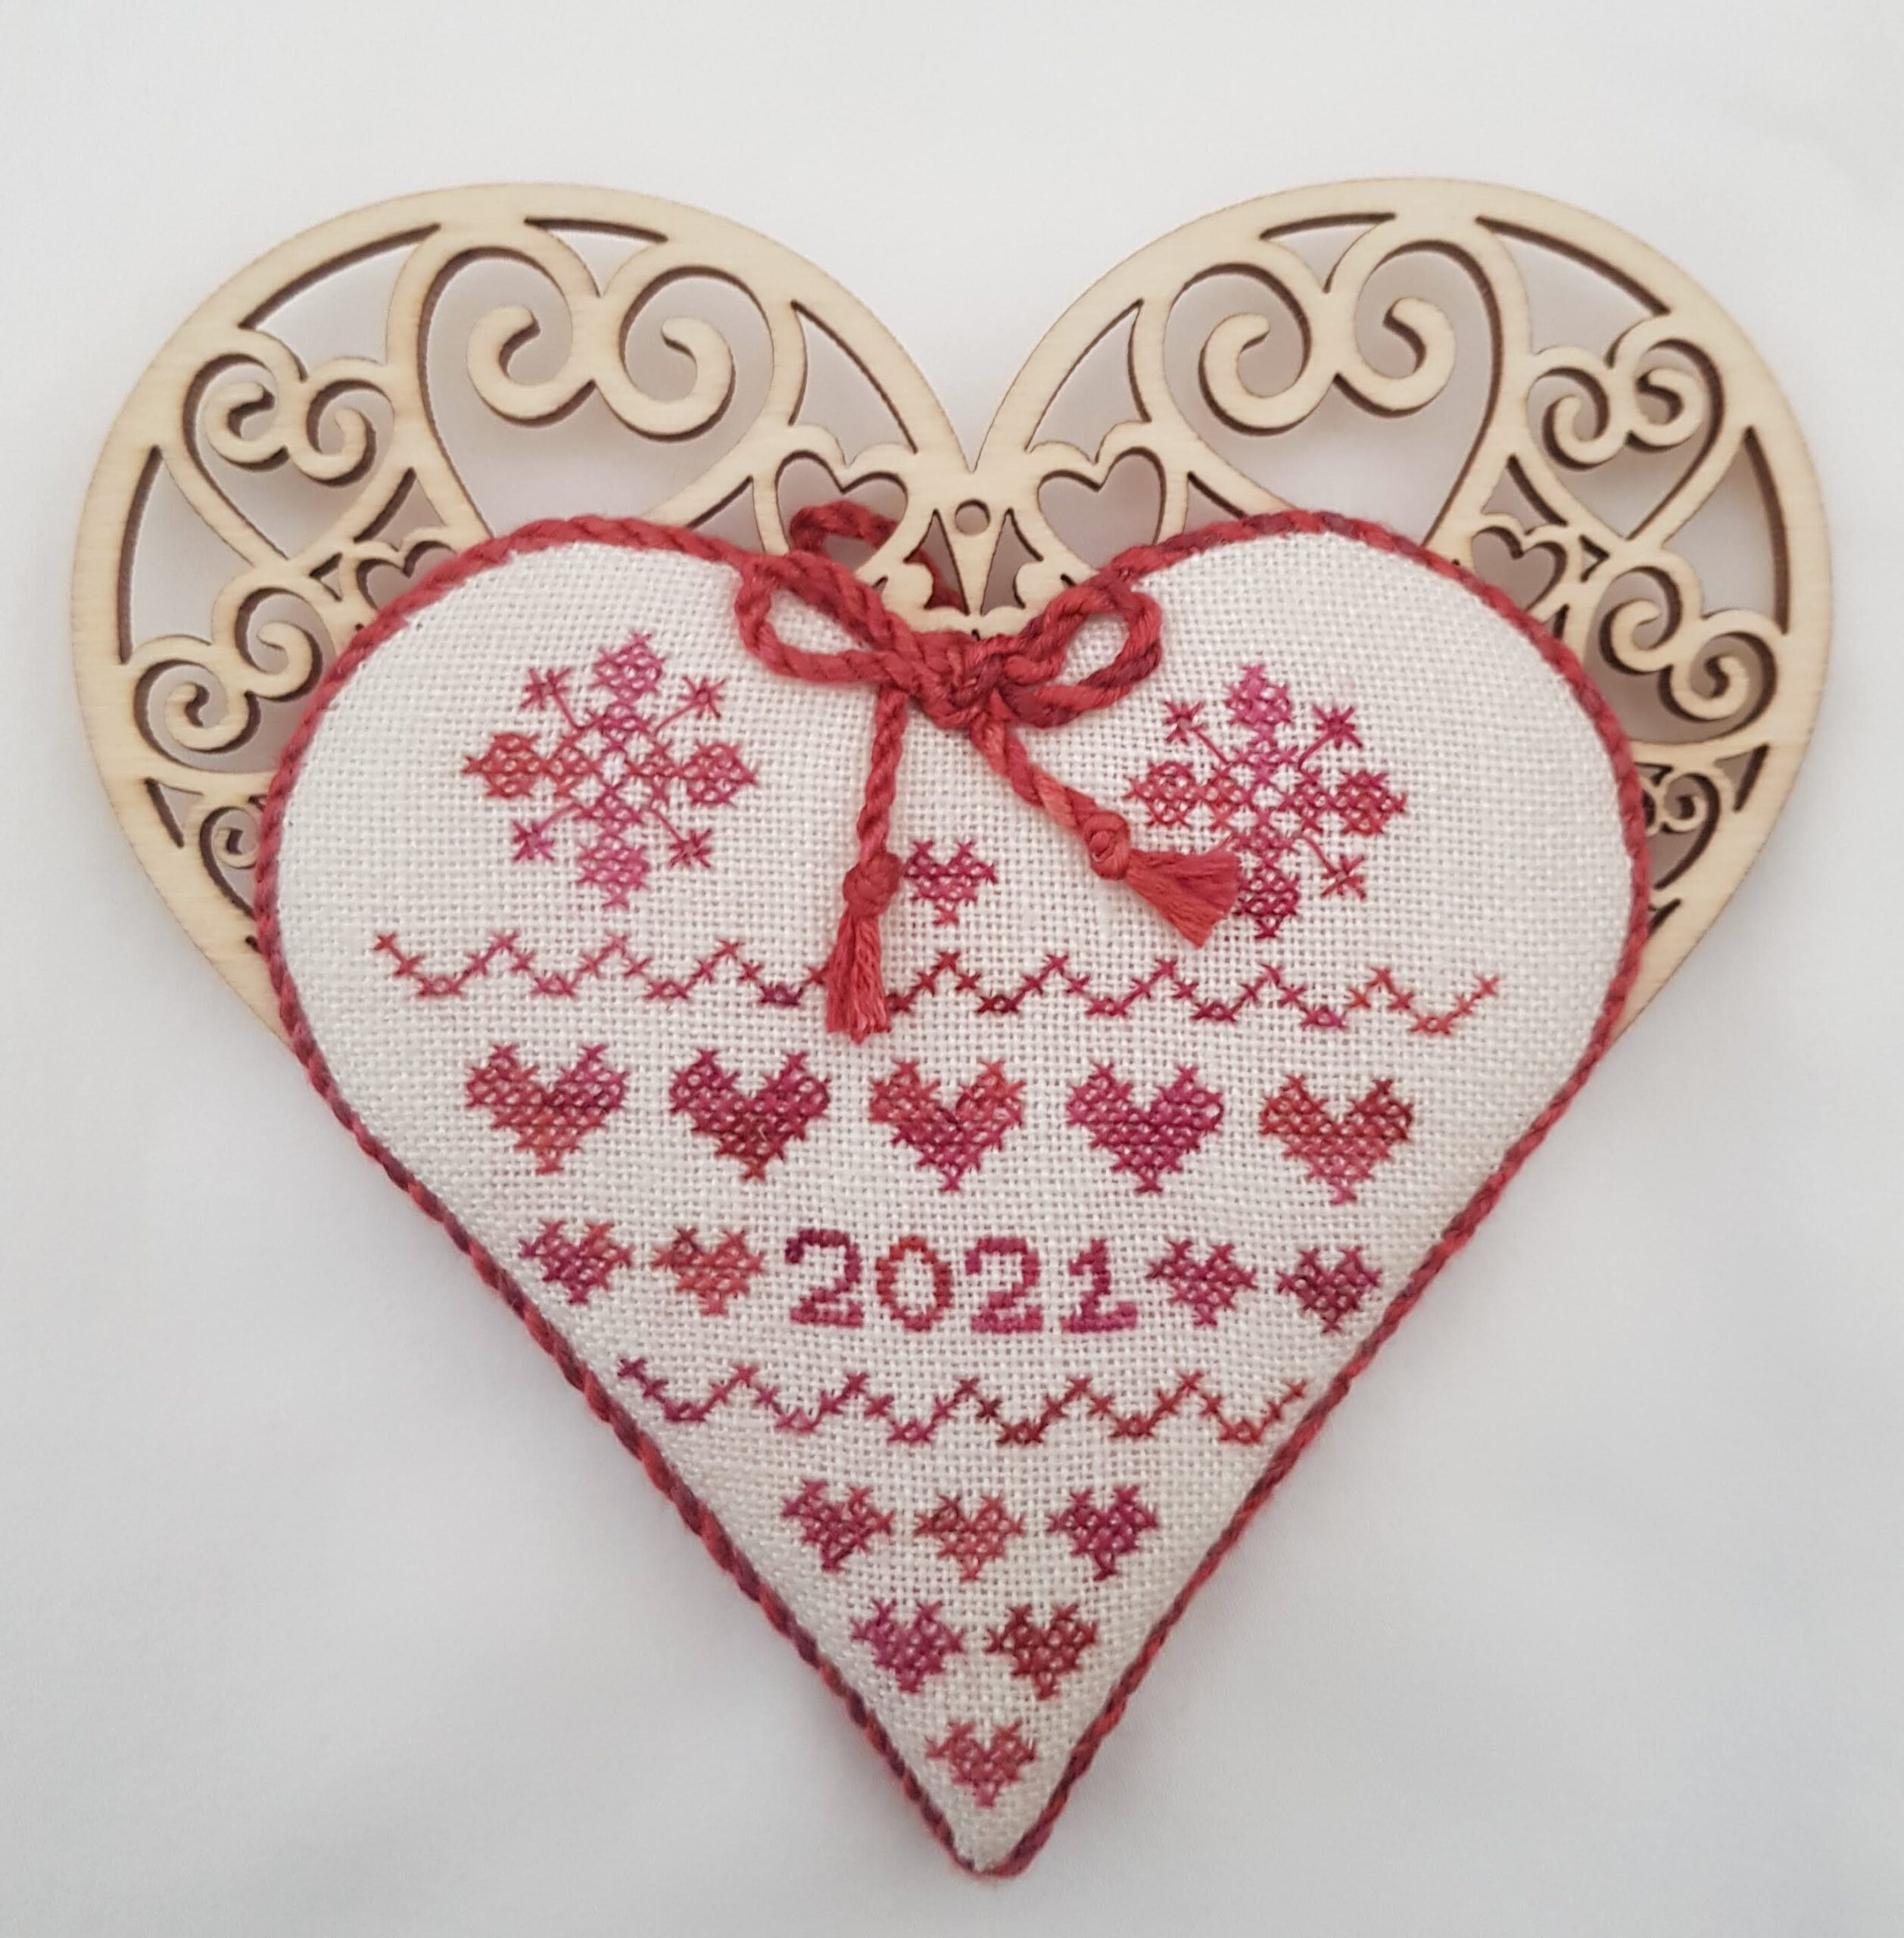 one side wooden heart with stitched red hearts and flowers